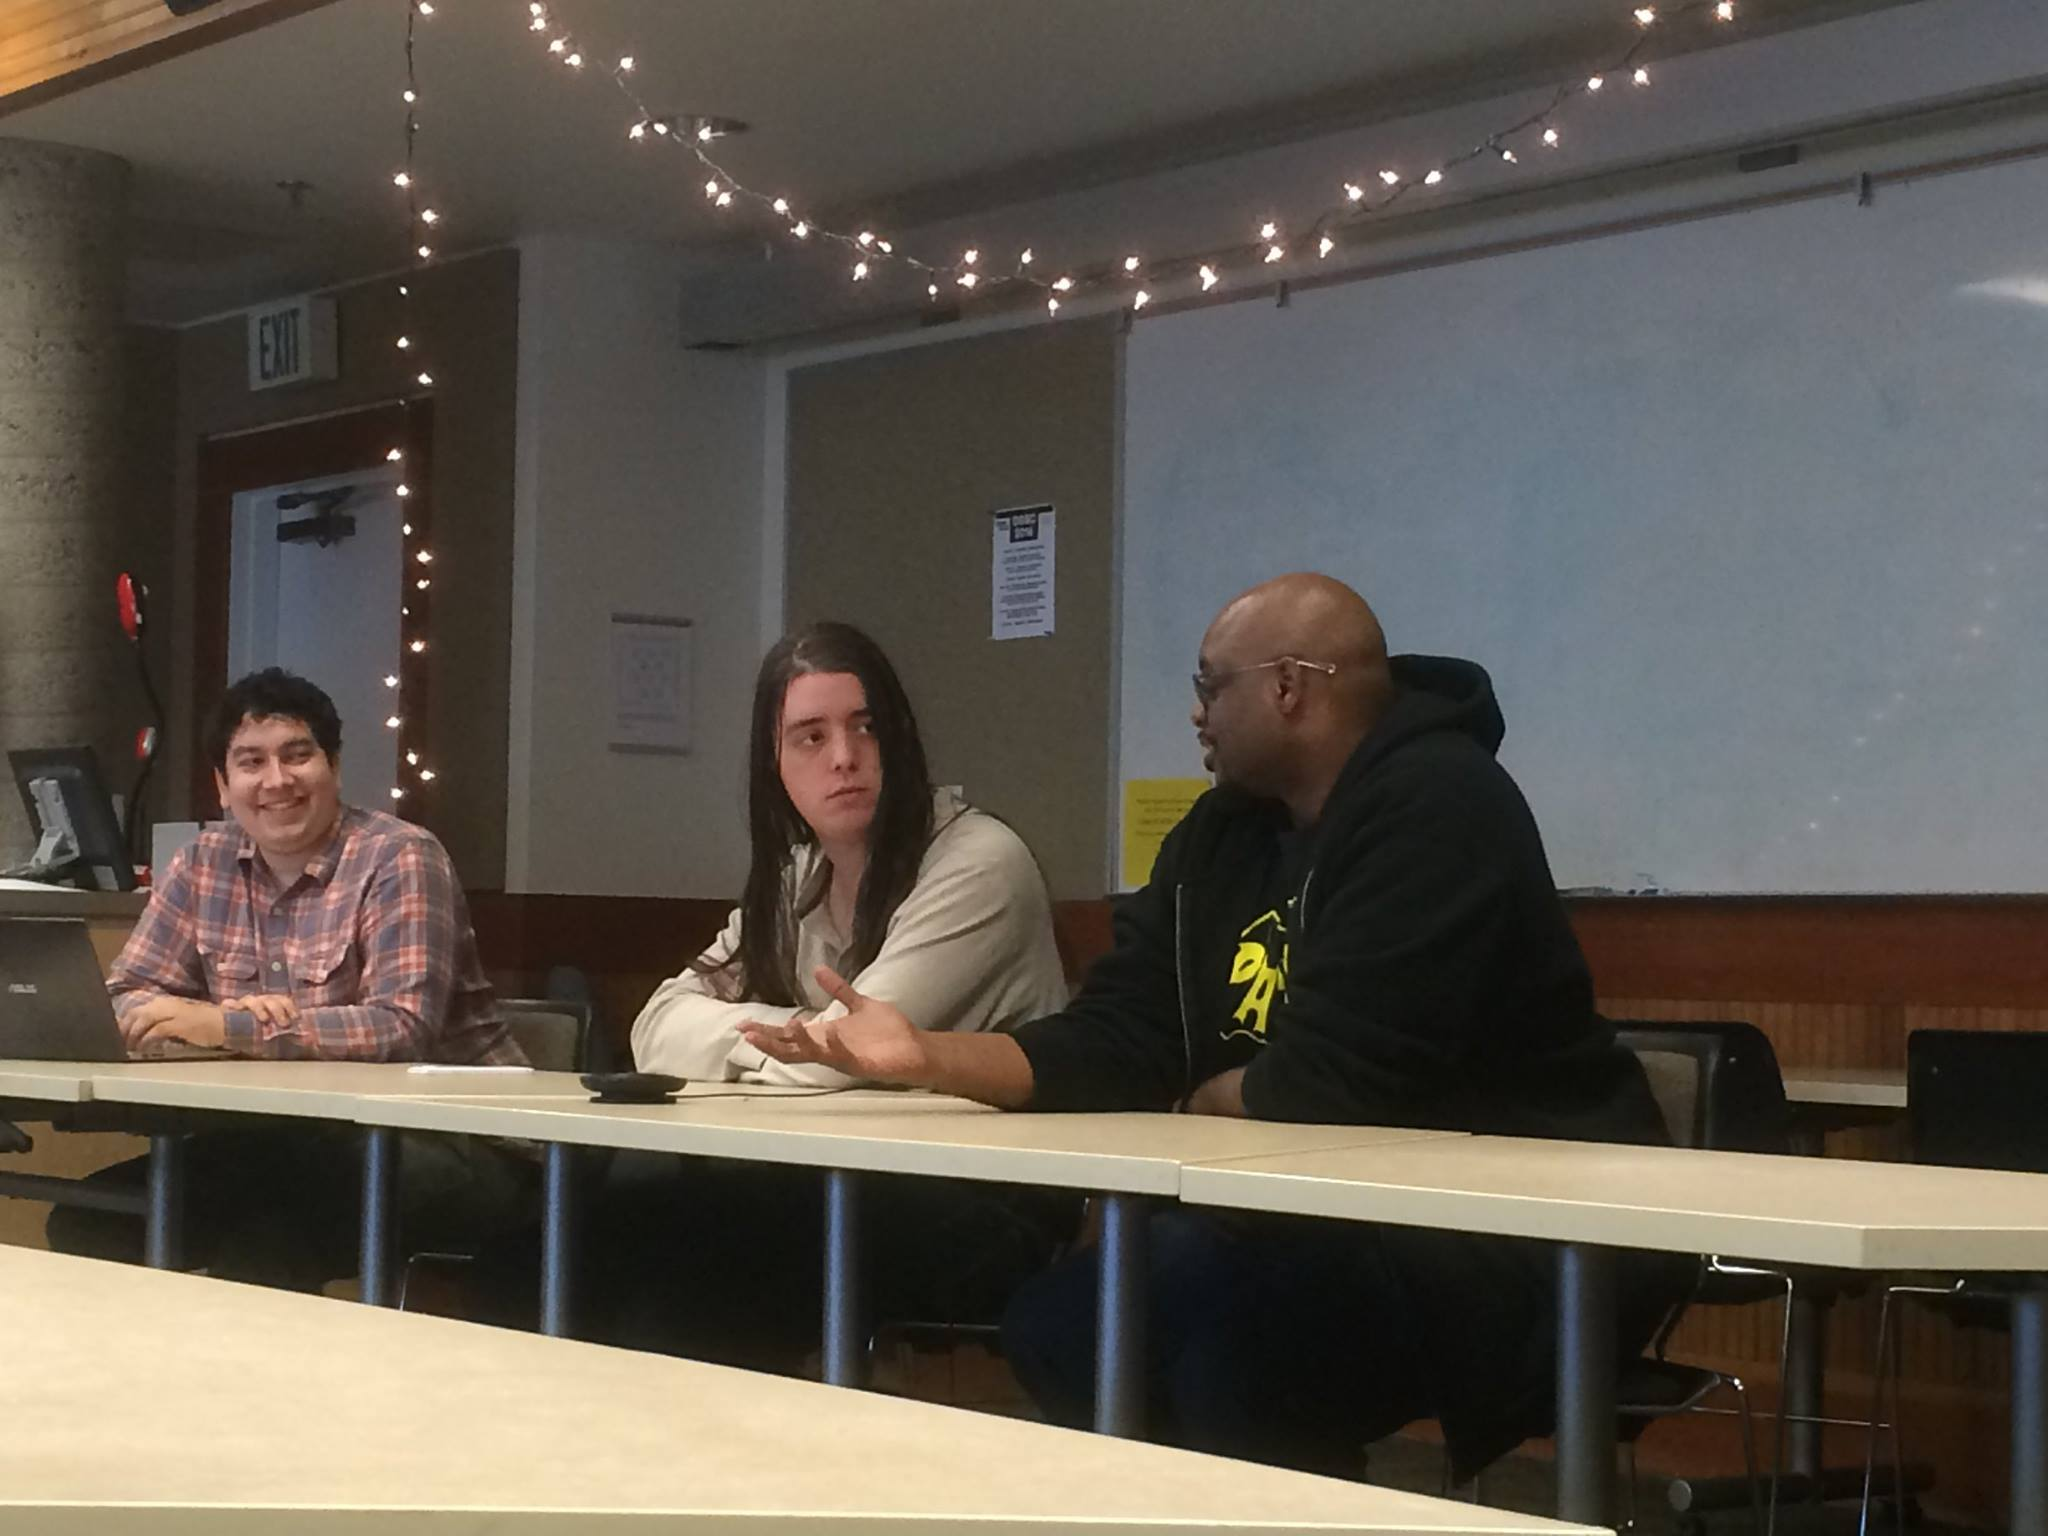 Myself, Austin Howe, and Kahlief Adams, in the 'Games & Society' panel.